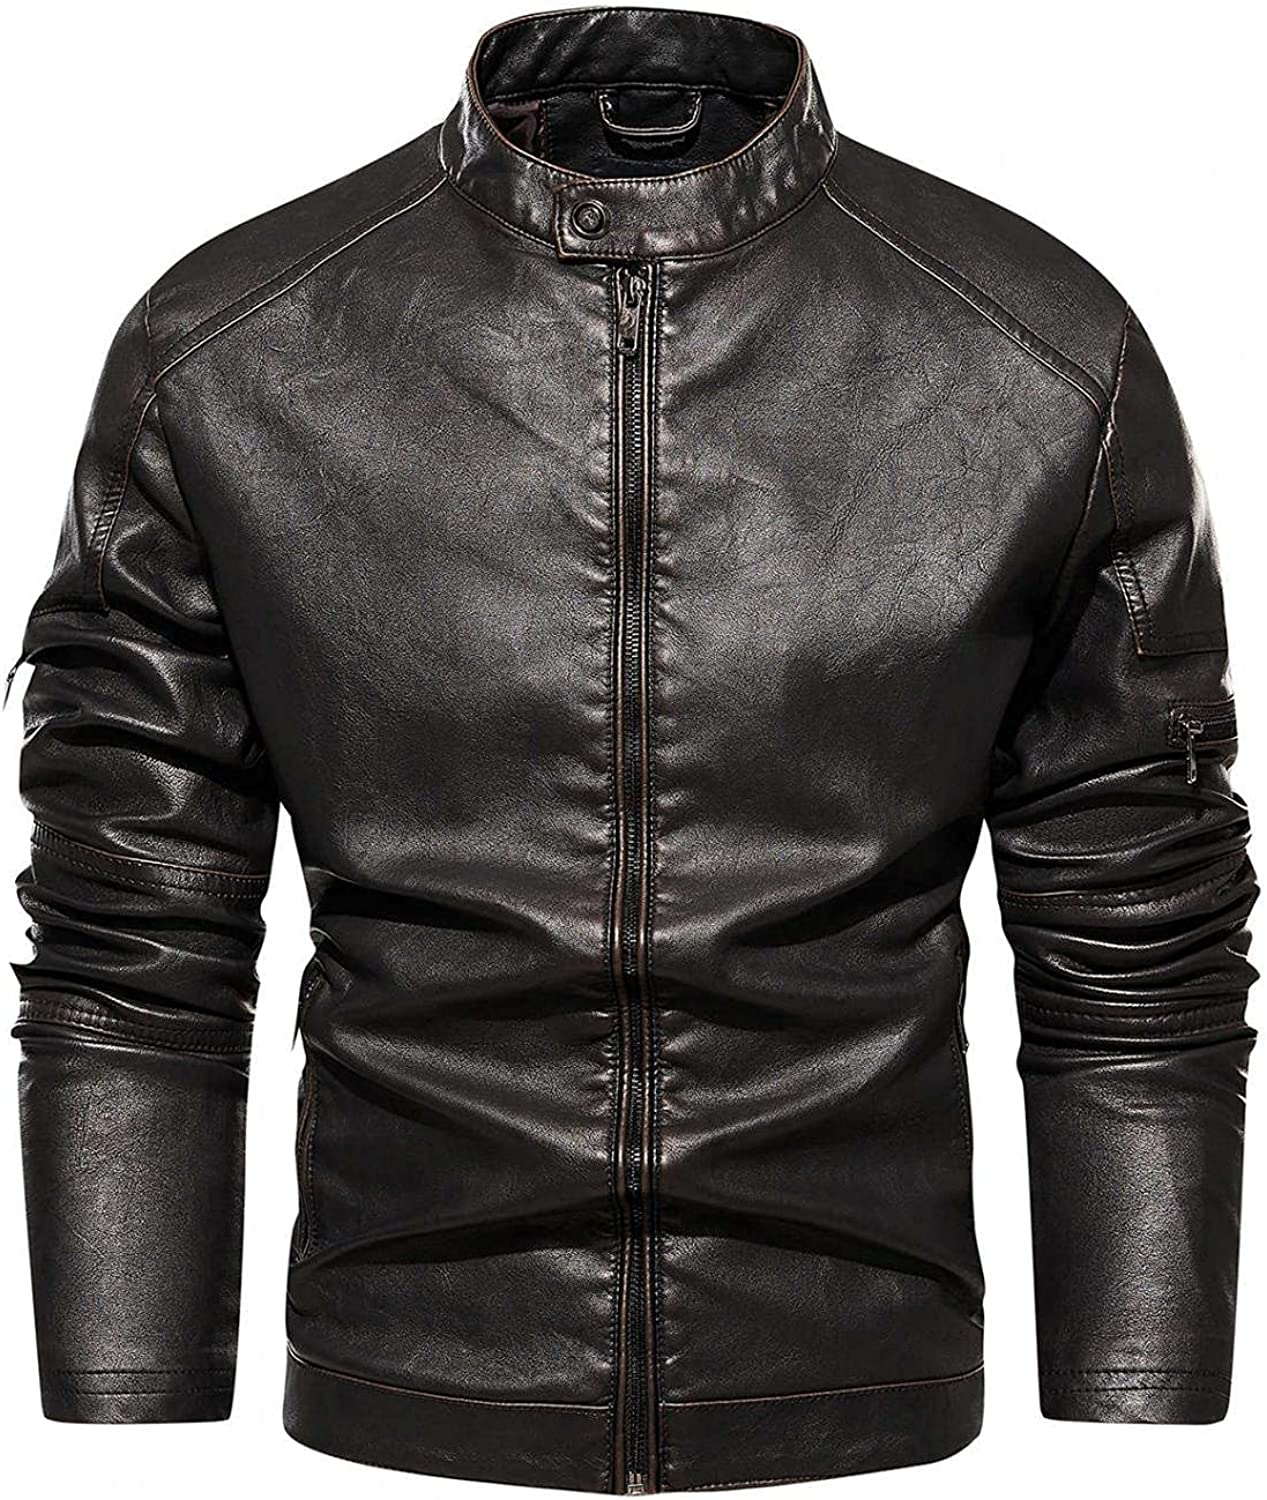 Mens Leather Motorcycle Jackets Stand Collar Full Zipper Windbreaker Outwear Tops Warm Thicken Sweatershirts Overcoat